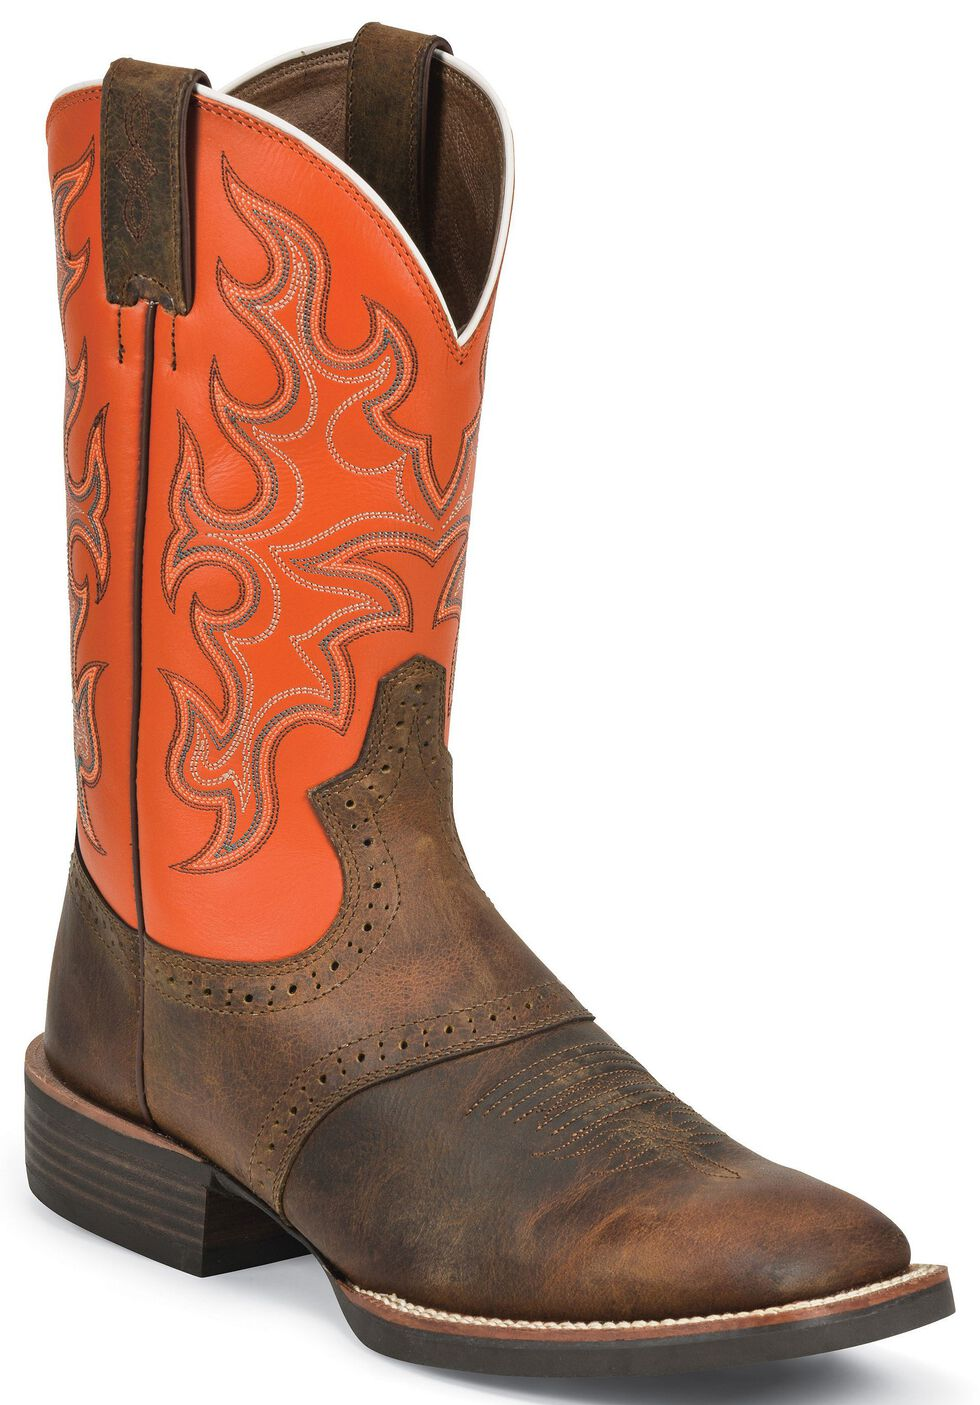 Justin Silver Orange Cattleman Saddle Vamp Cowboy Boots - Wide Square Toe, Tan Distressed, hi-res